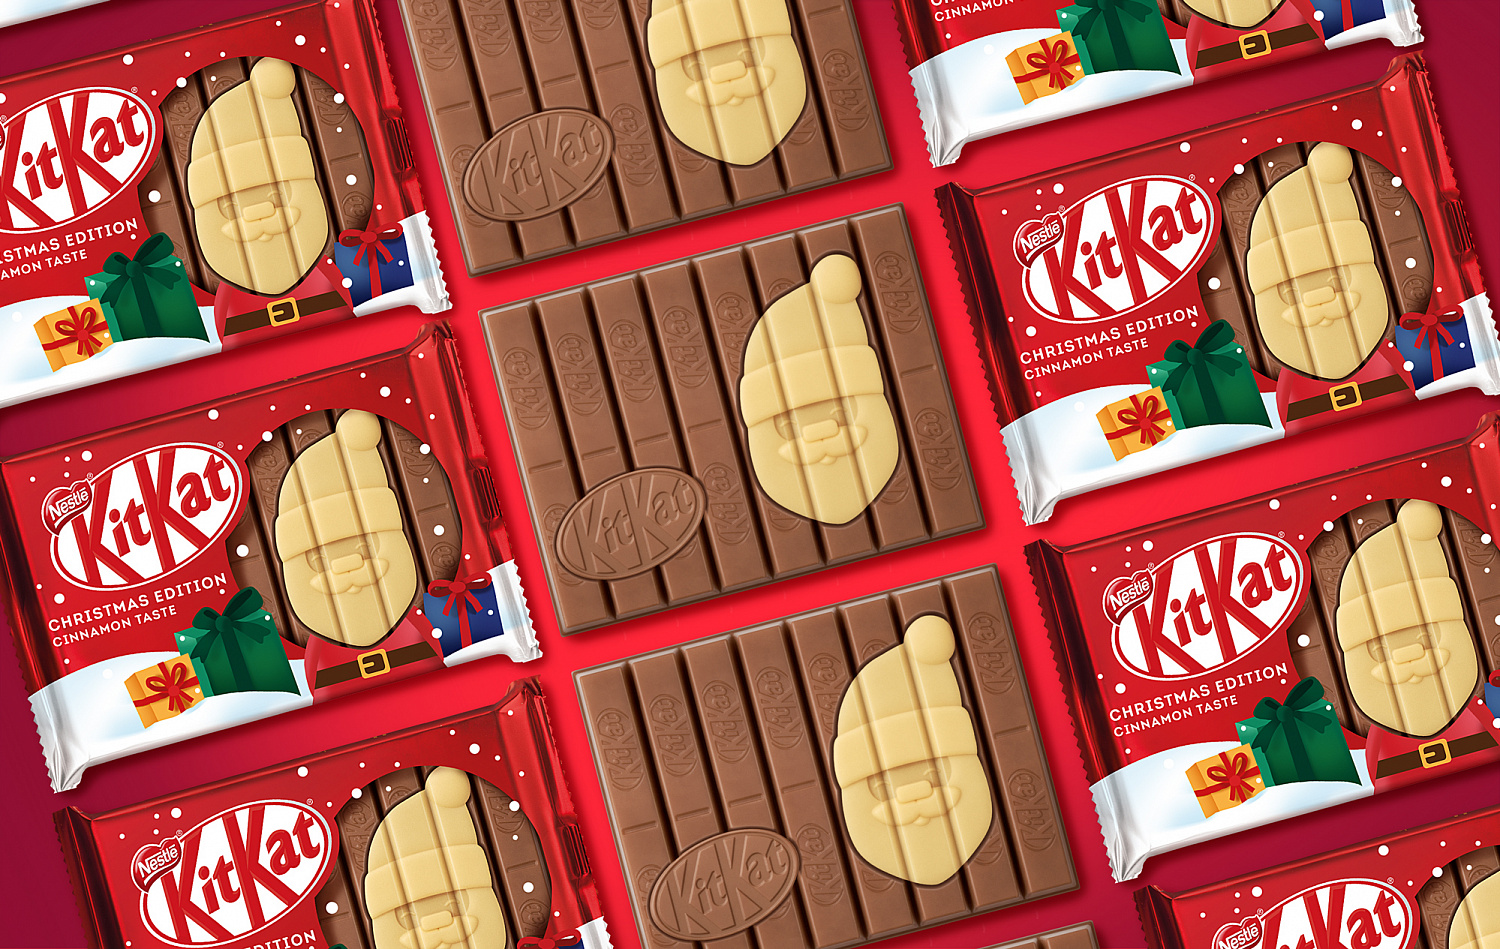 KitKat® Christmas Edition - Портфолио Depot